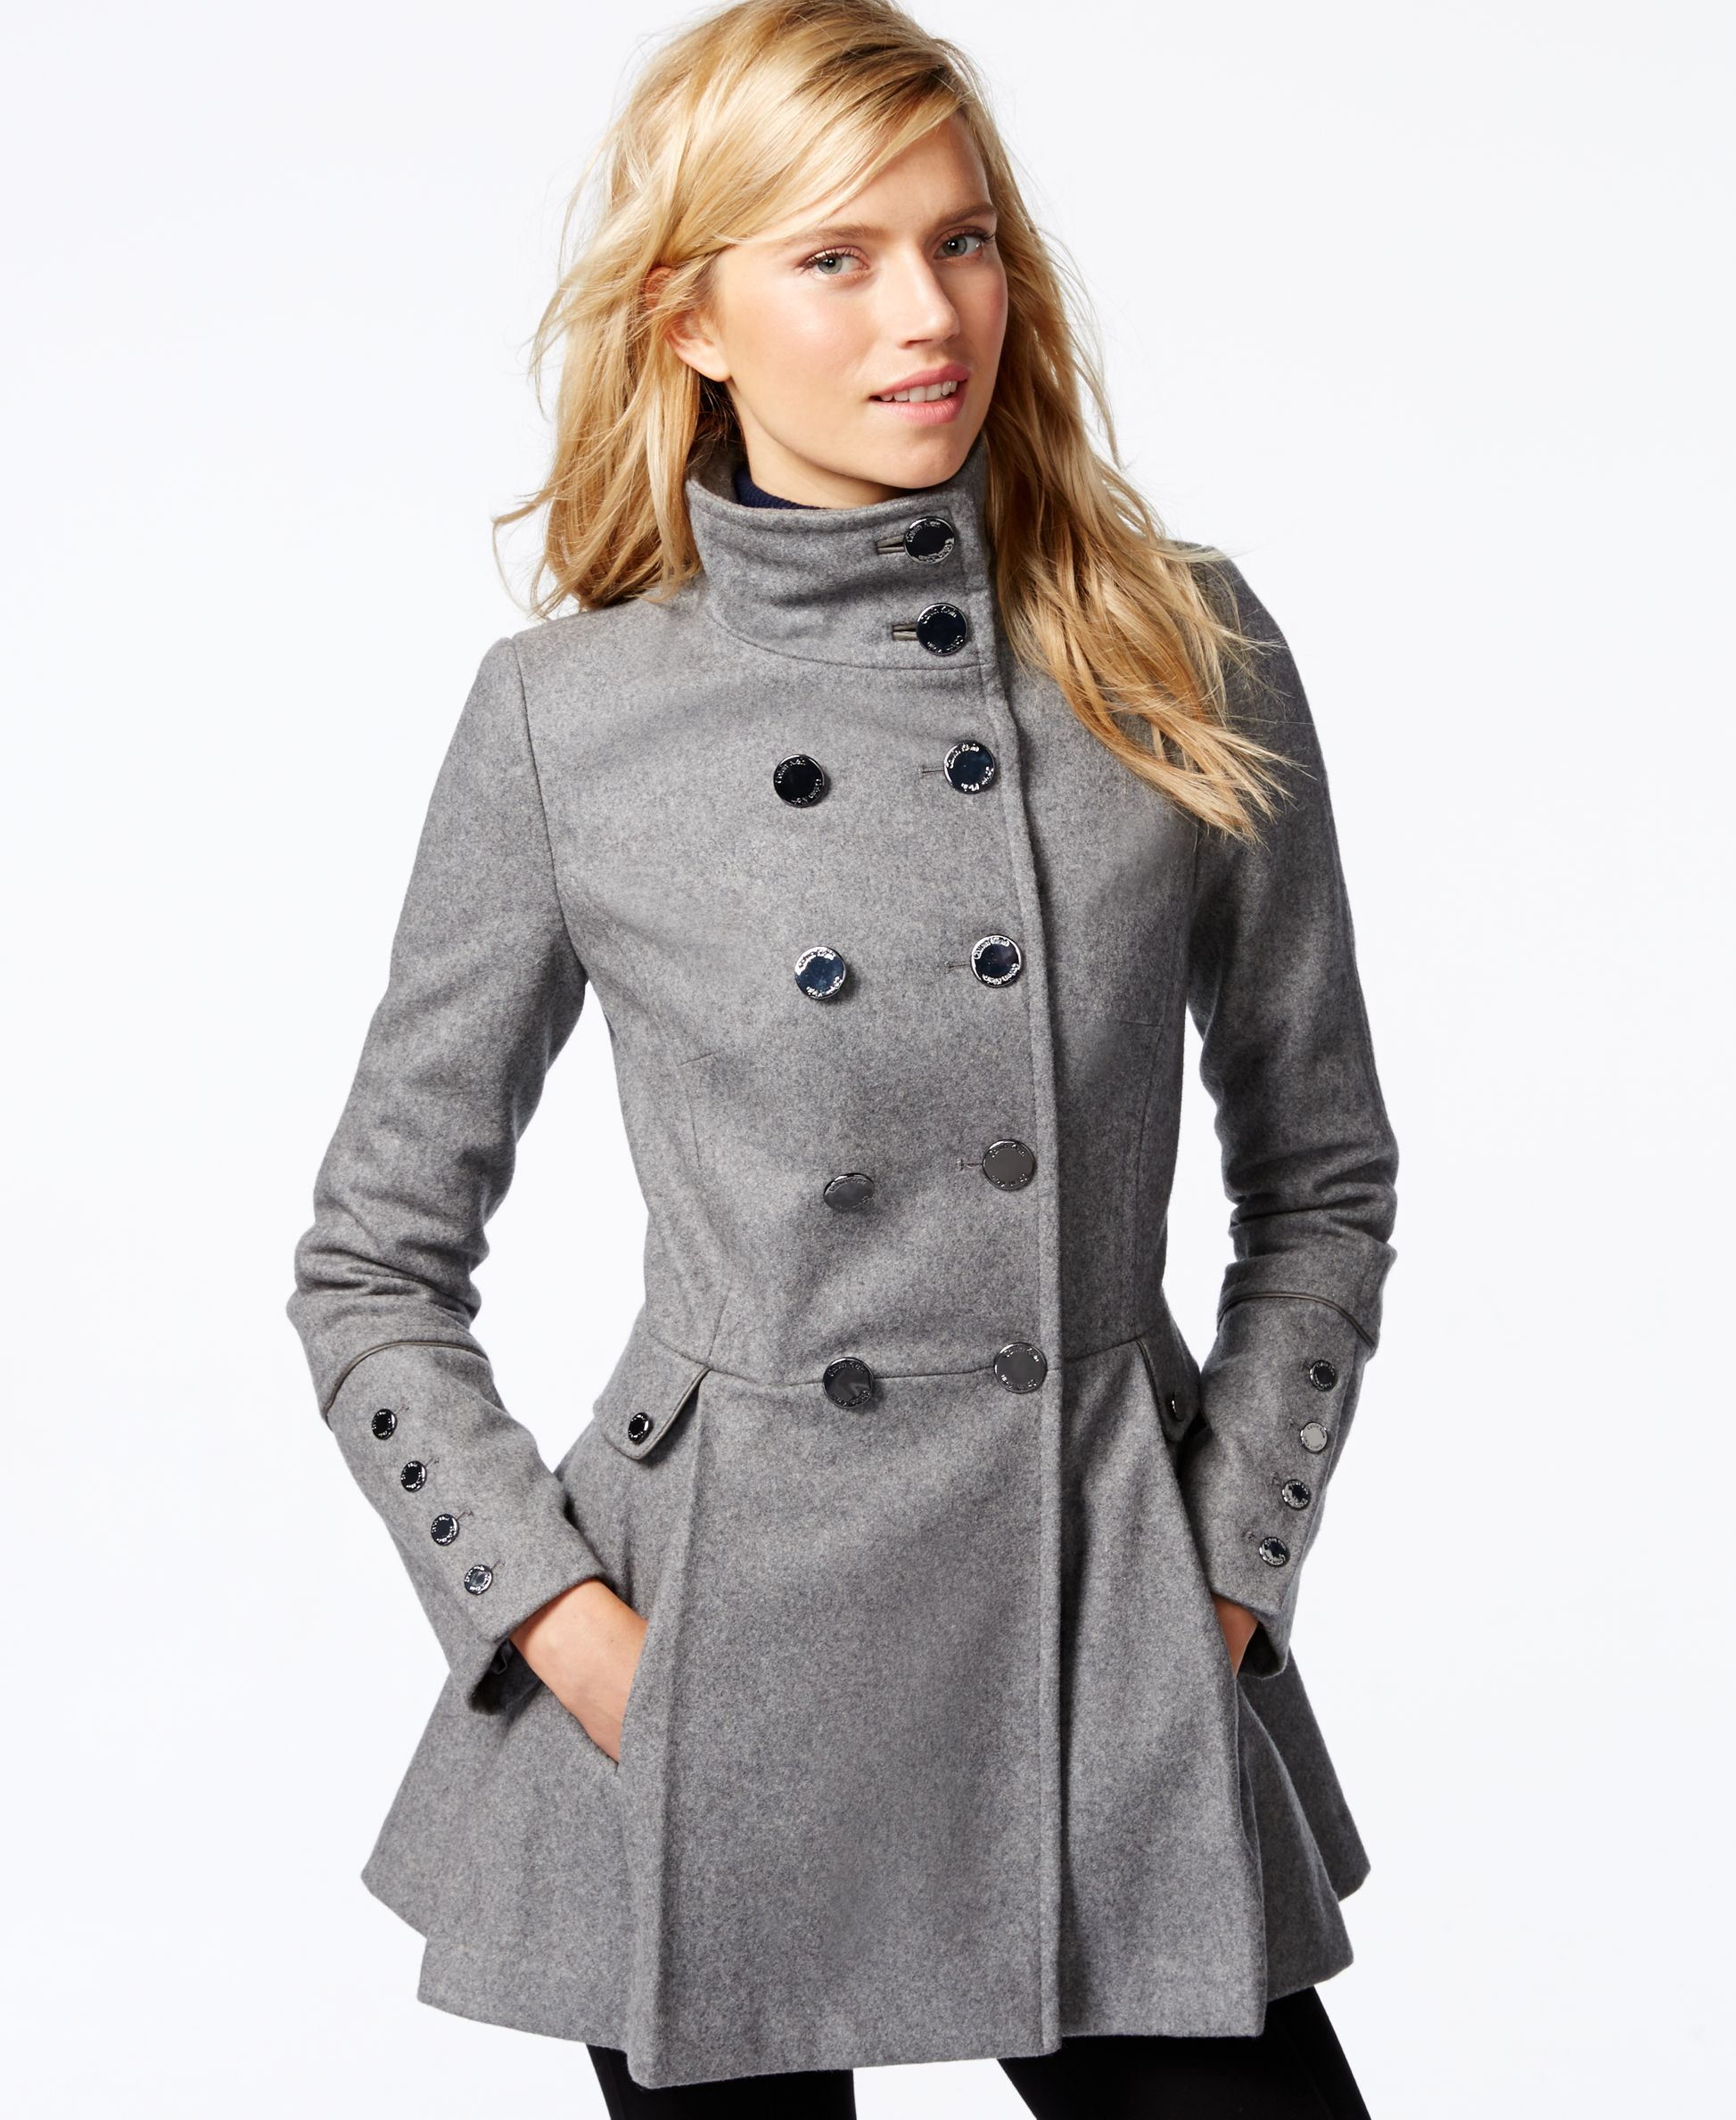 Calvin Klein Stand-Collar Skirted Peacoat - Coats - Women - Macy's